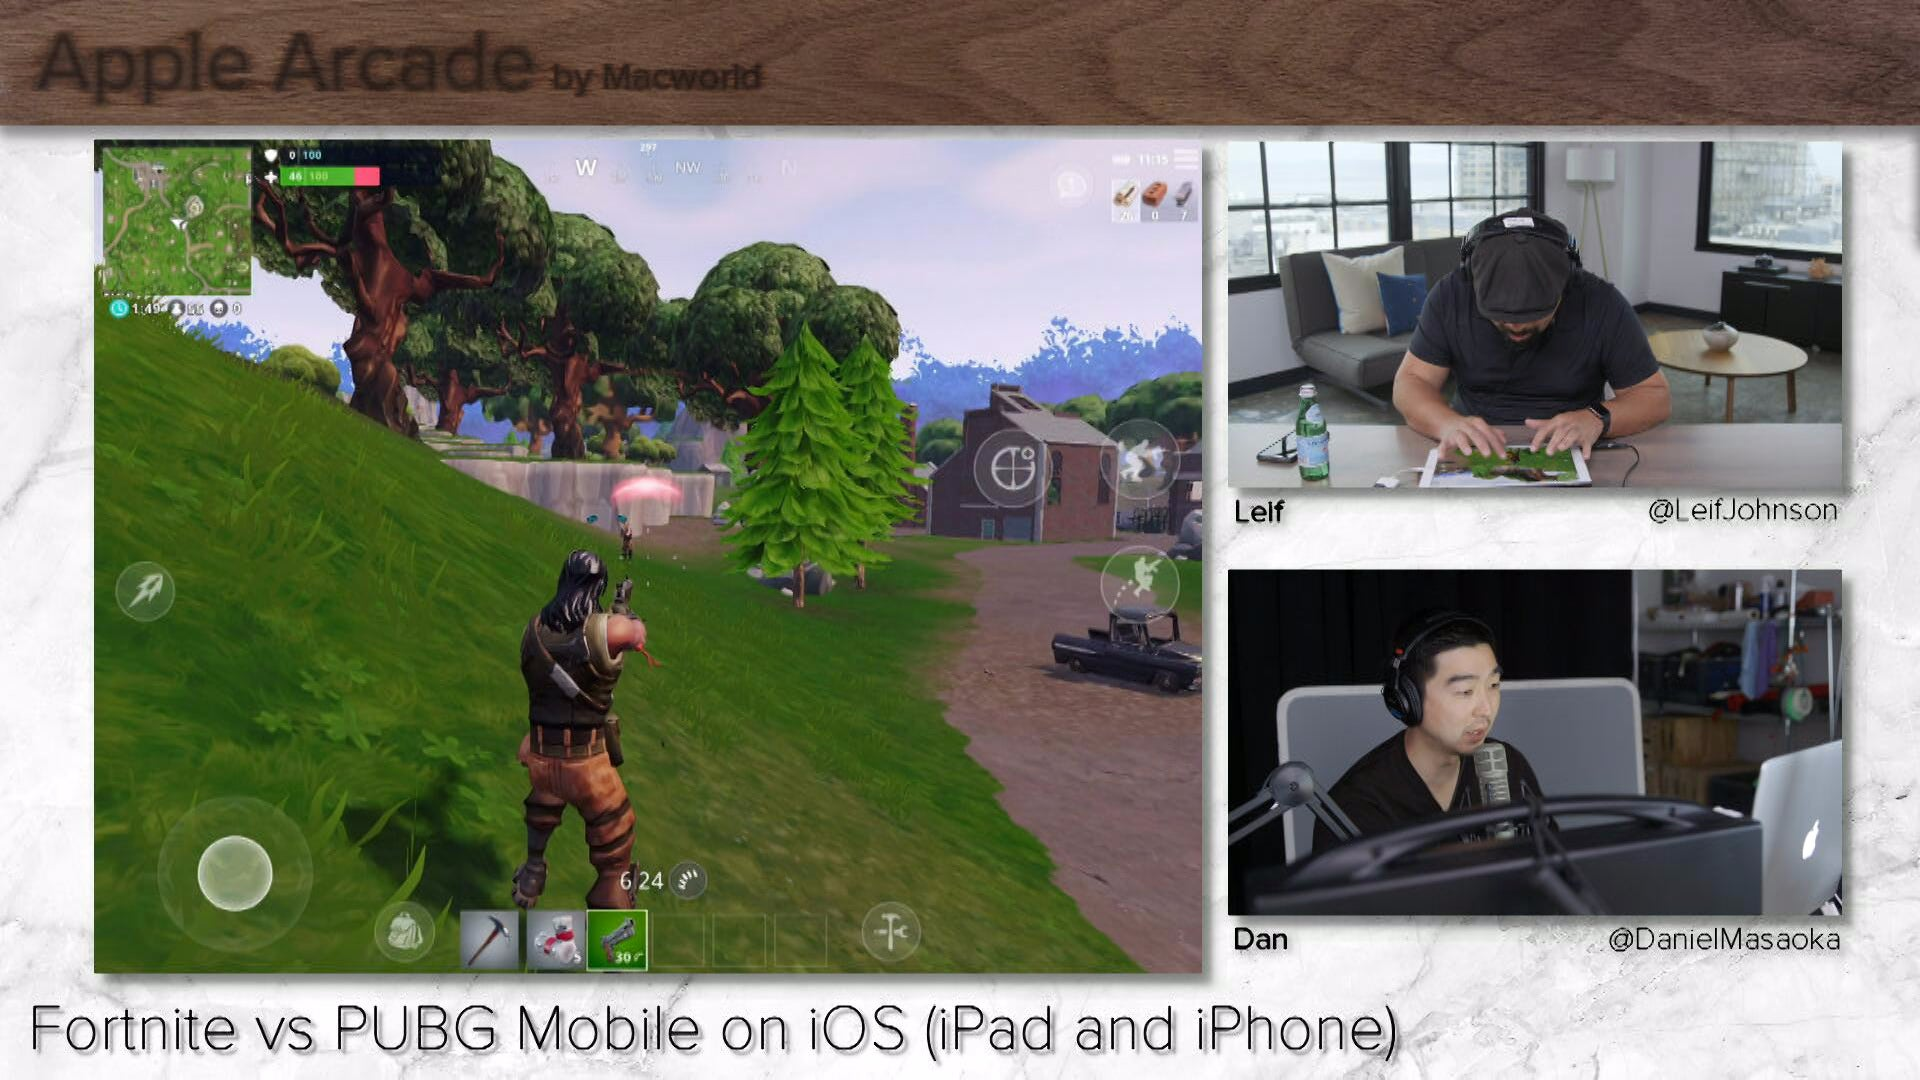 Fortnite Vs PUBG Mobile On IOS IPad And IPhone Apple Arcade Ep 3 IDGTV